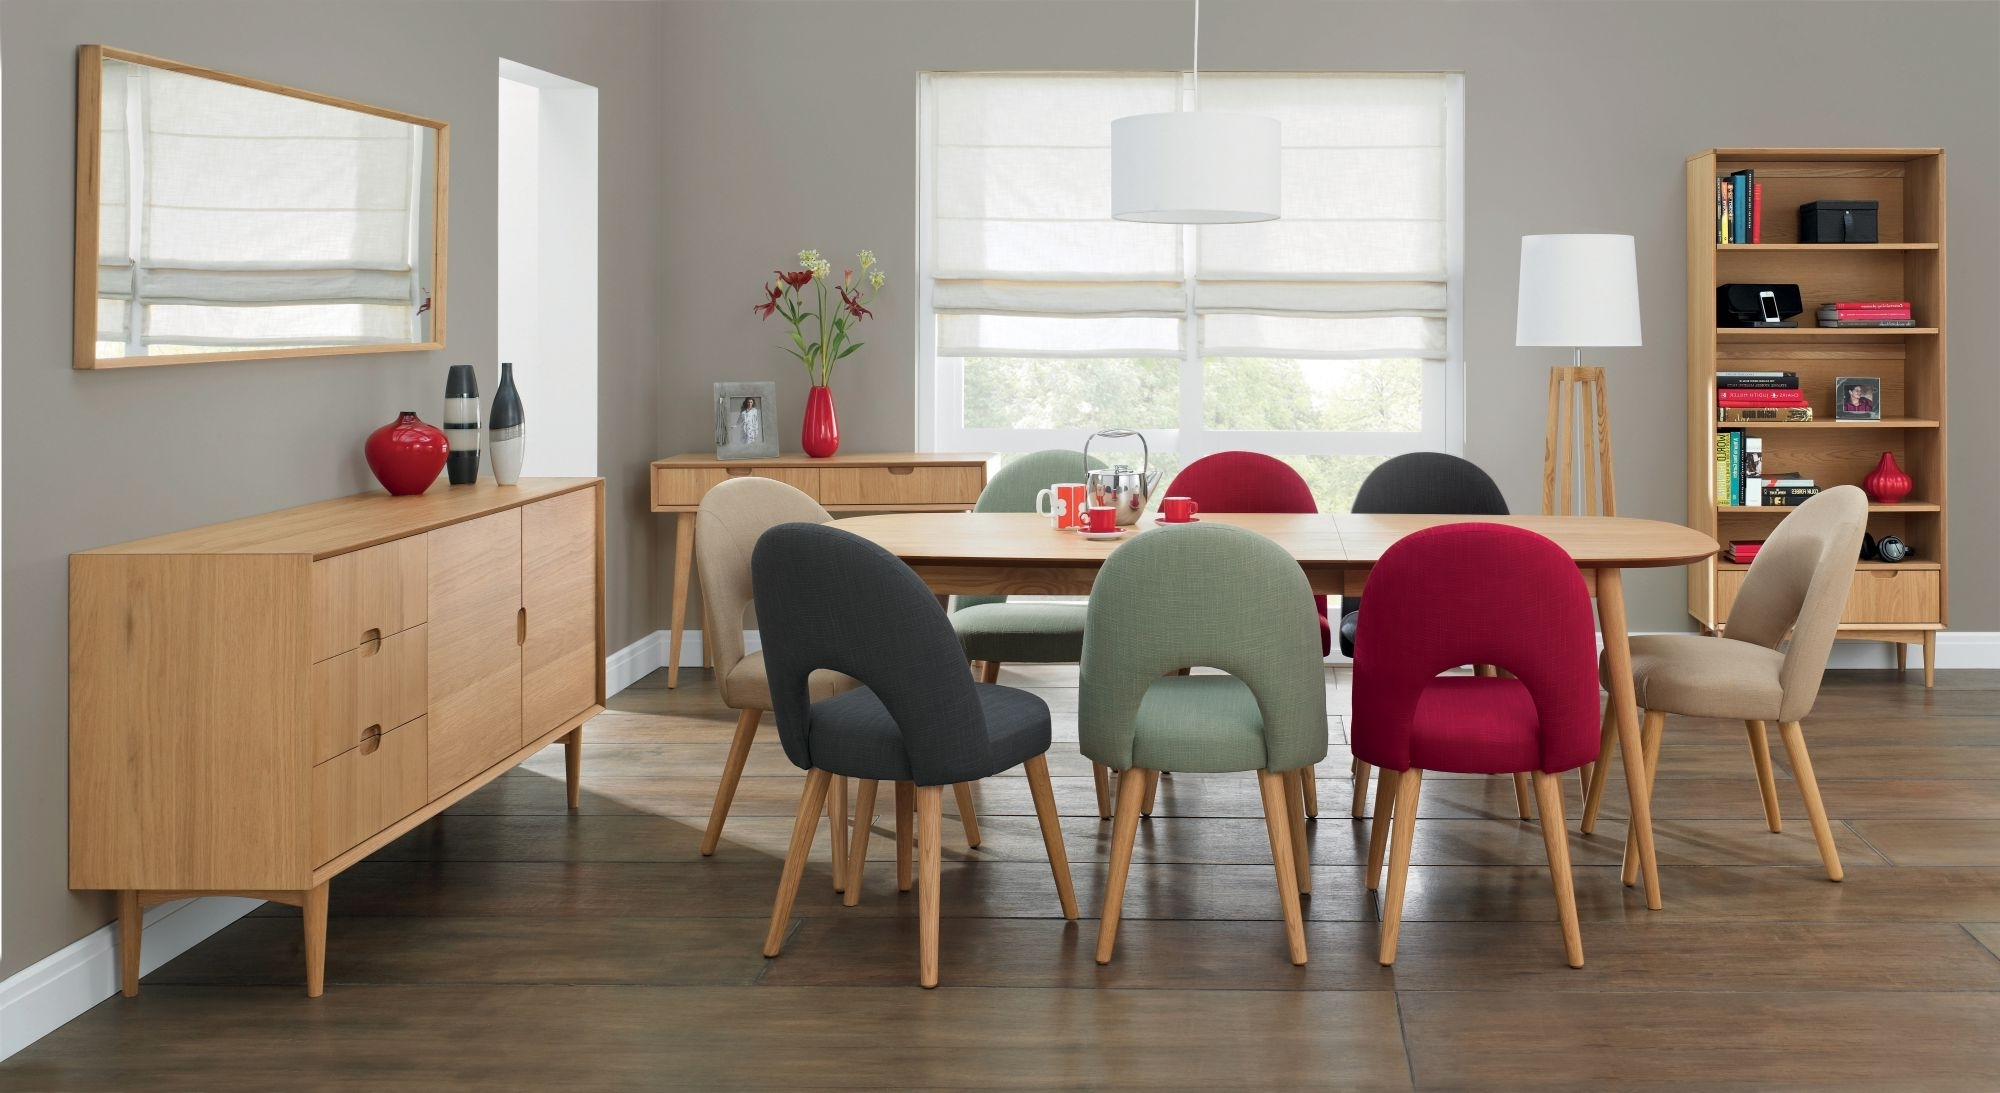 Bentley Designs Oslo Oak 6 Seater Dining Table & 6 Stone Fabric Throughout Best And Newest 8 Seat Dining Tables (Gallery 23 of 25)